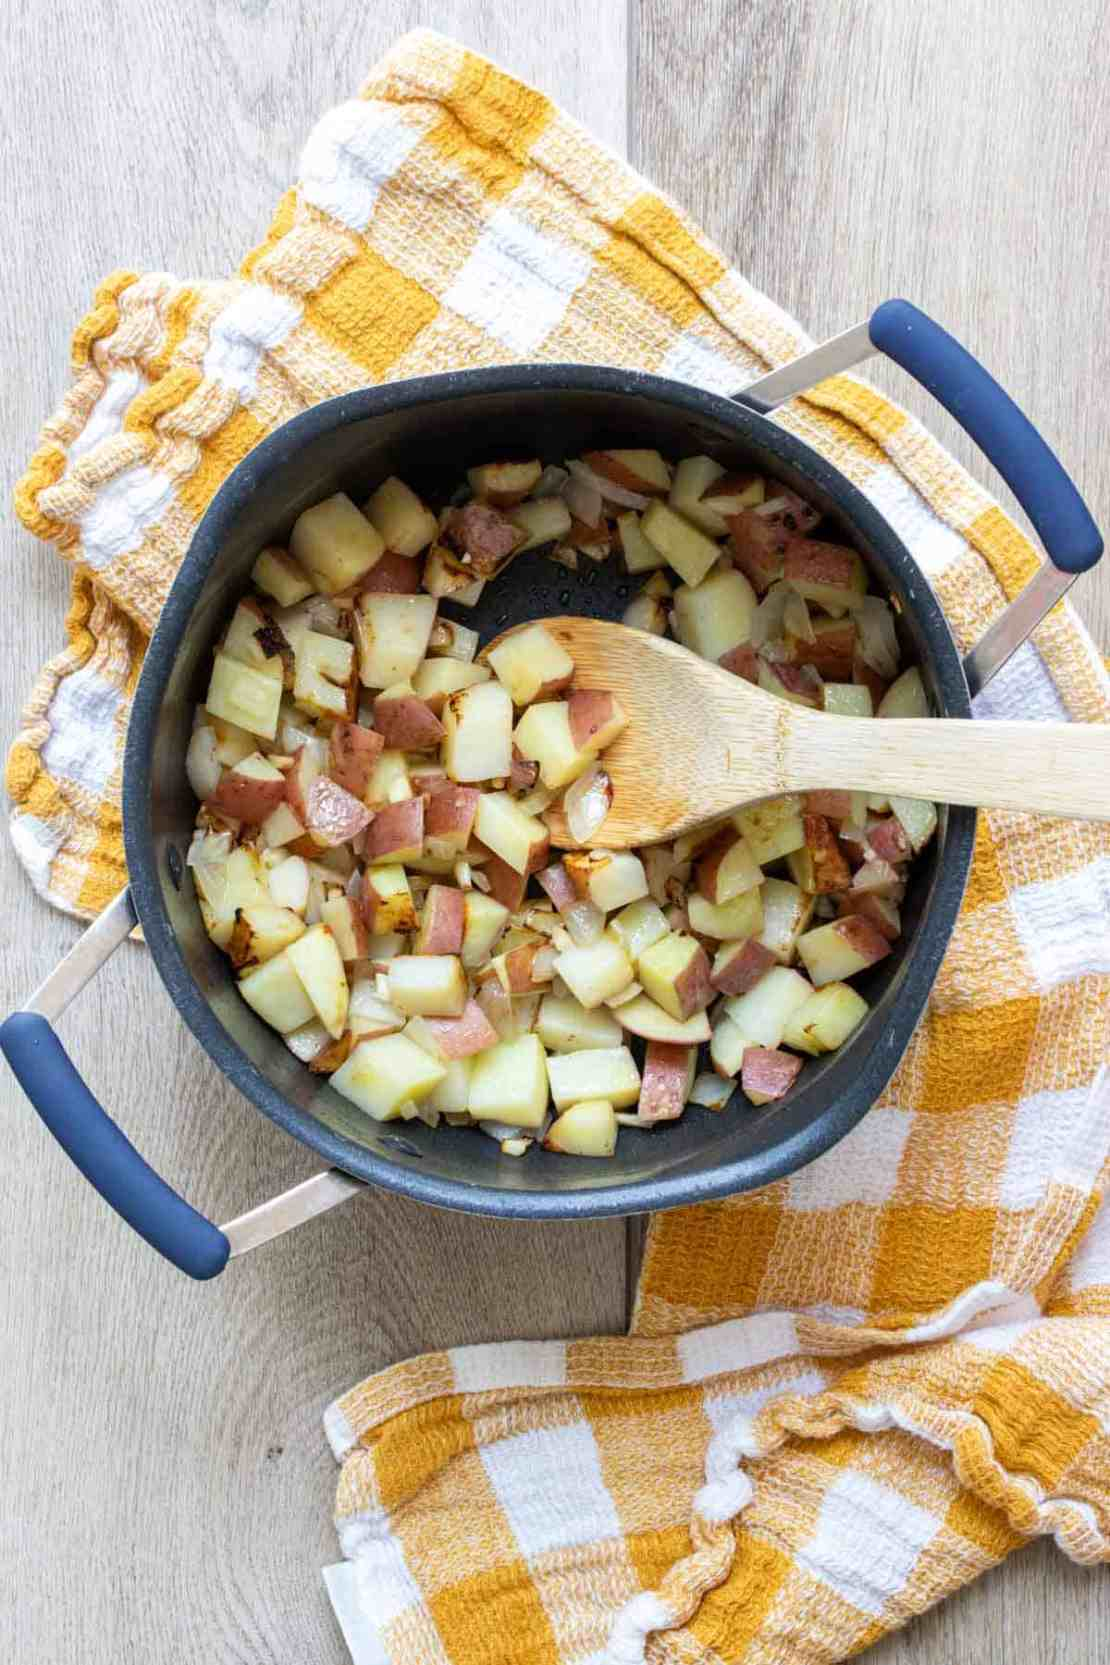 Wooden spoon mixing chopped potatoes in a pot